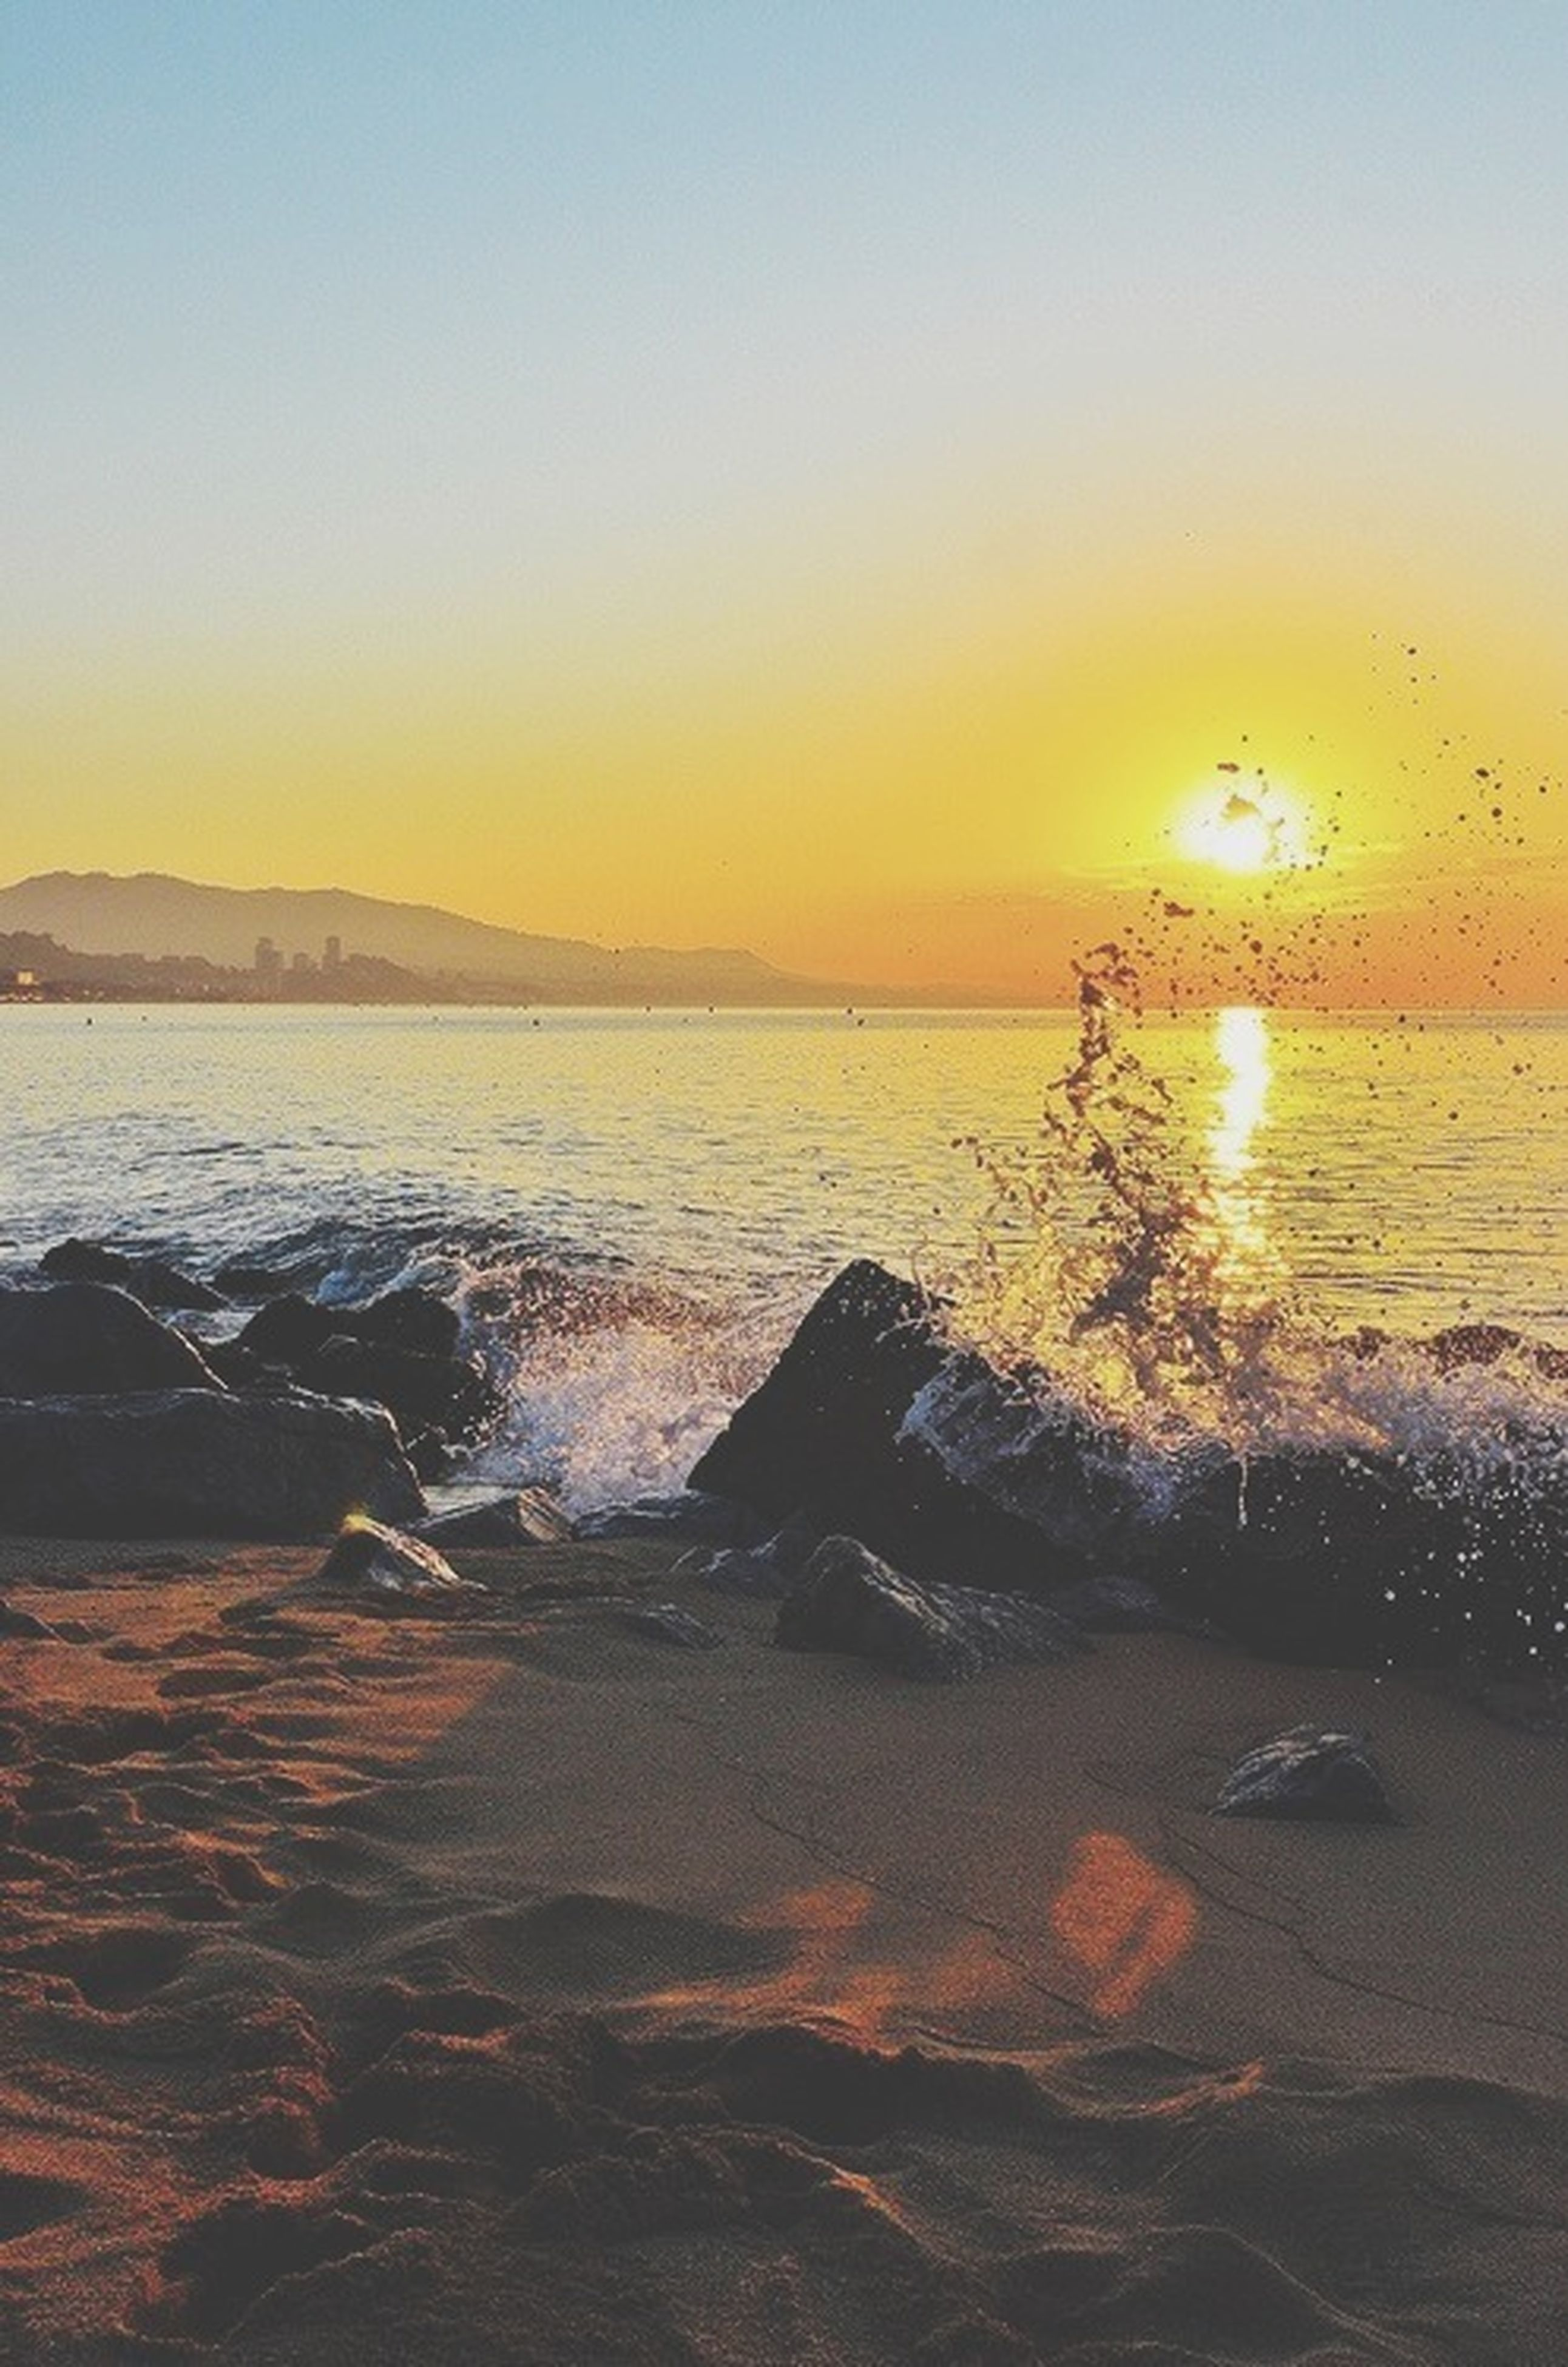 sunset, sea, water, sun, scenics, orange color, horizon over water, beach, beauty in nature, tranquil scene, clear sky, tranquility, shore, nature, idyllic, copy space, wave, sunlight, reflection, sky